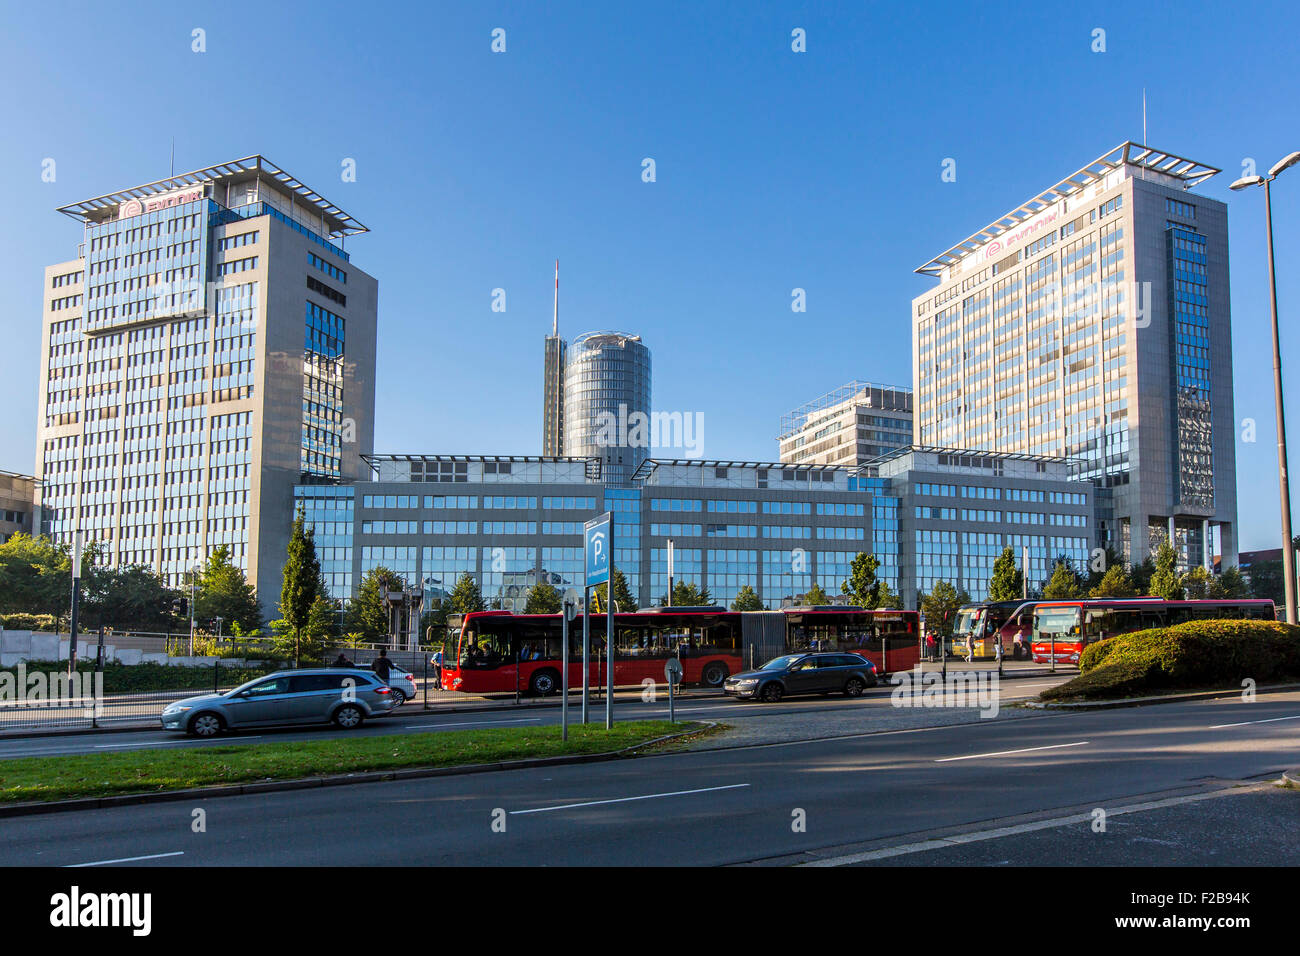 Skyline, skyscrapers, company headquarter of EVONIK industries and power company RWE, - Stock Image